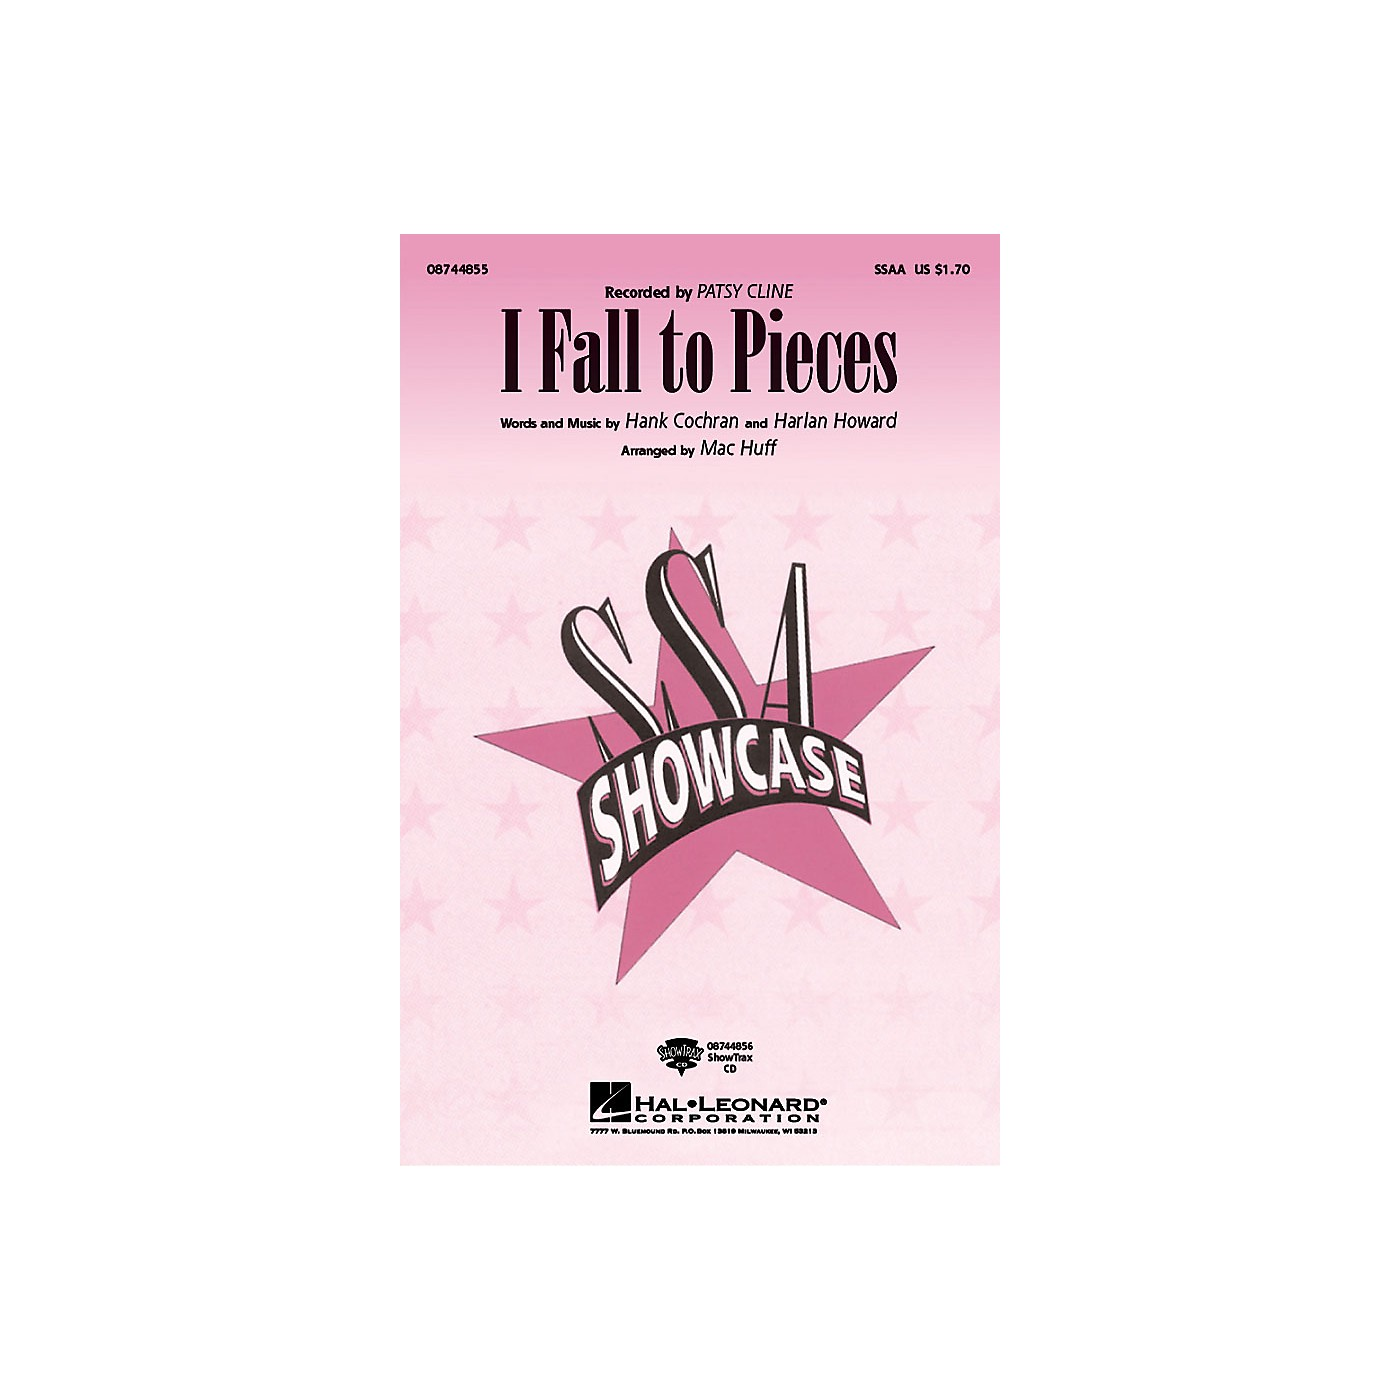 Hal Leonard I Fall to Pieces ShowTrax CD by Patsy Cline Arranged by Mac Huff thumbnail